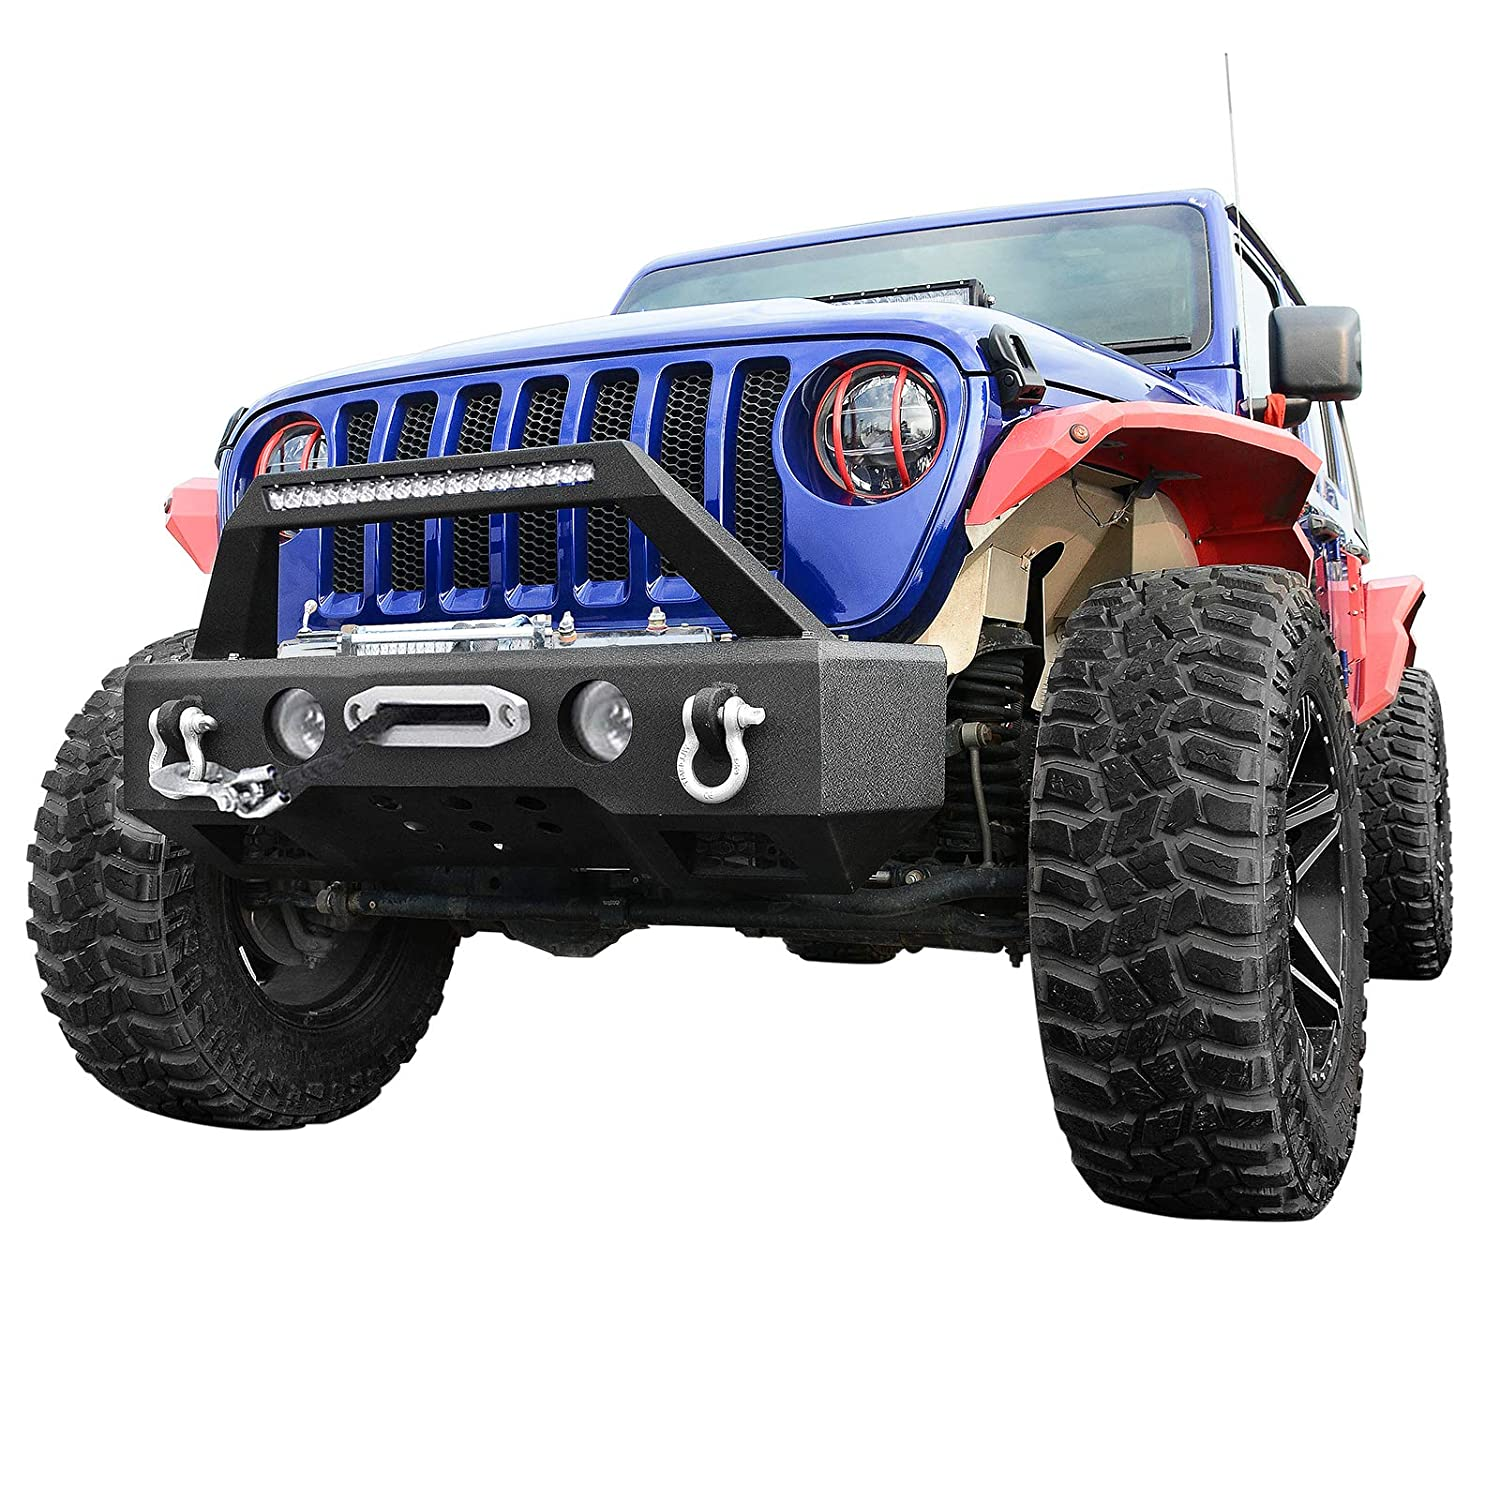 2 x D-rings and Winch Plate Textured Black for 2018-2019 Wrangler JL with OE Fog Light Hole LEDKINGDOMUS Rock Crawler Stubby Front Bumper for 2007-2018 Jeep JK